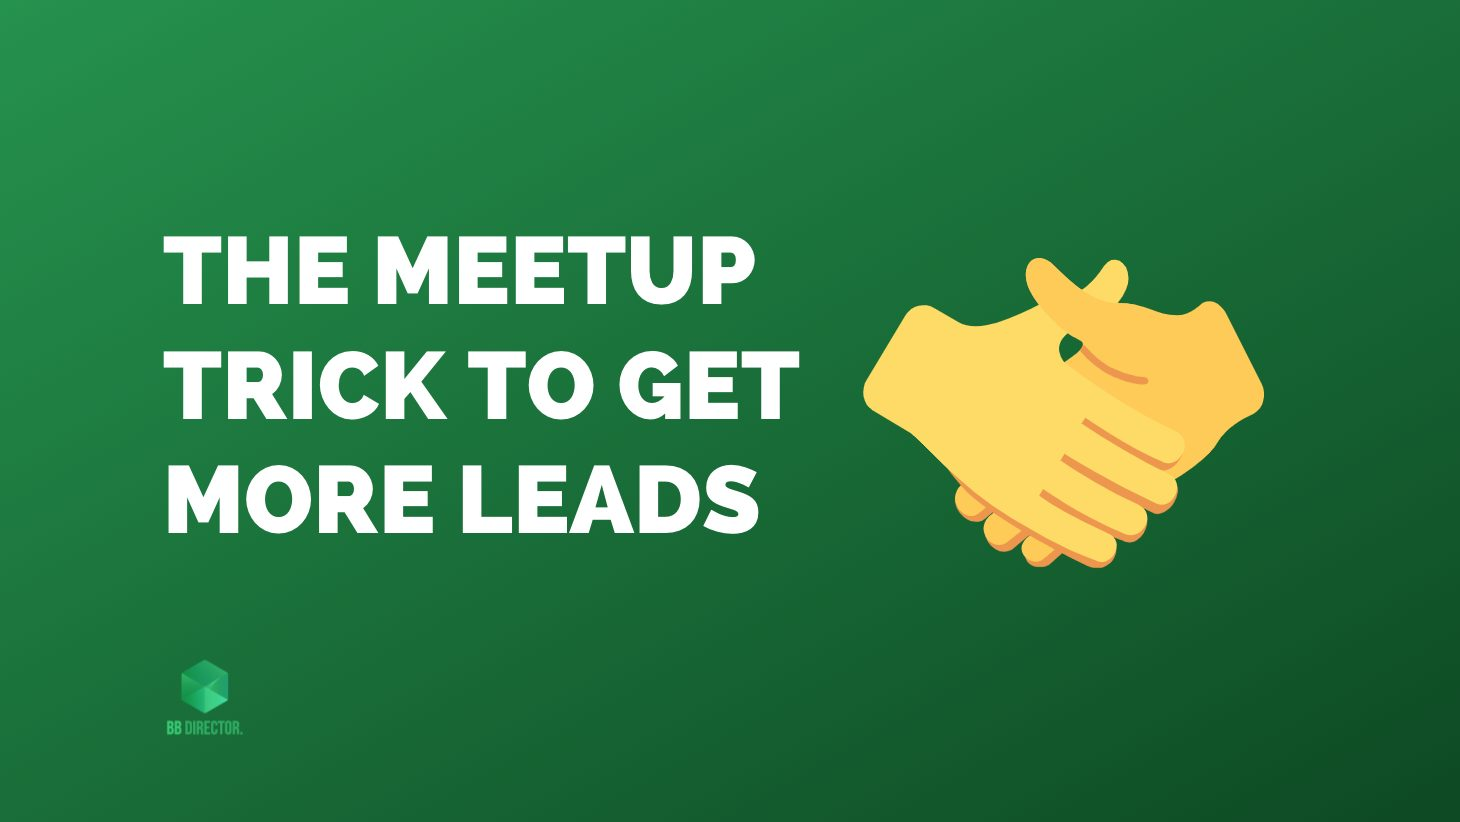 meetup trick to get leads